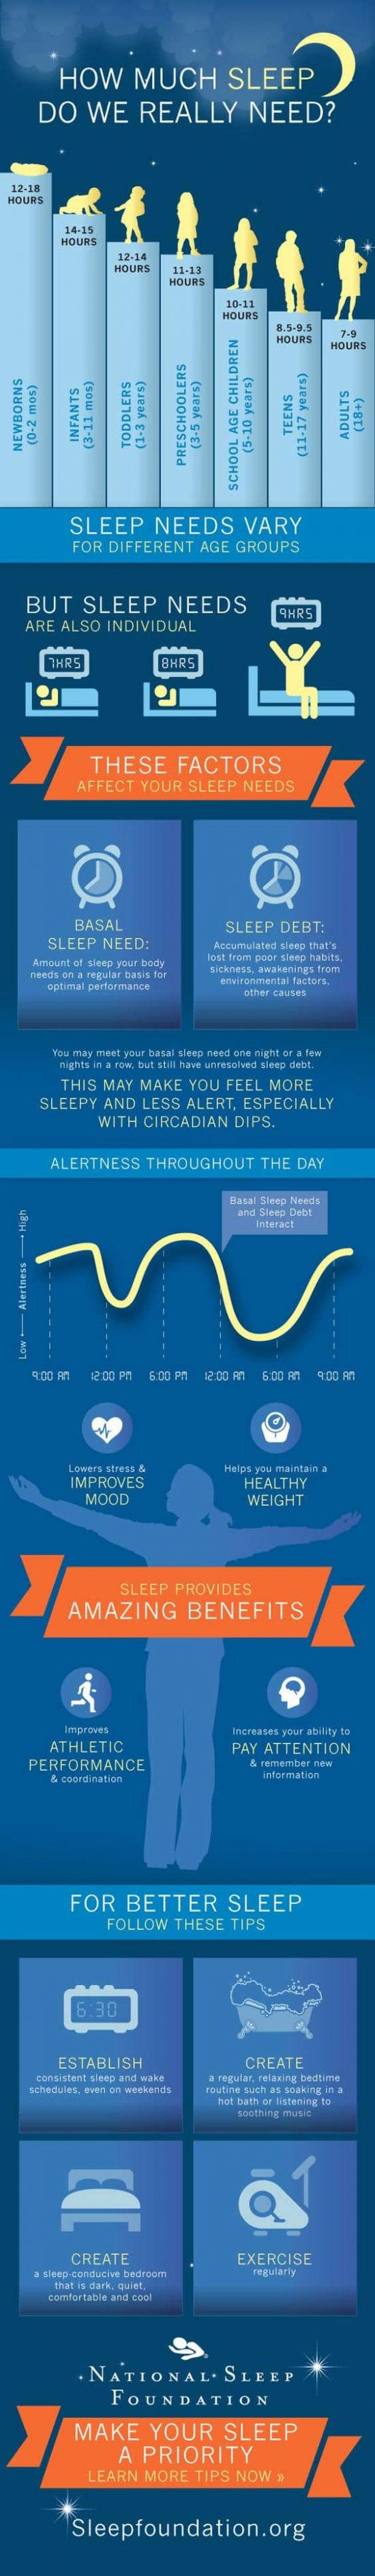 How much sleep do we really need